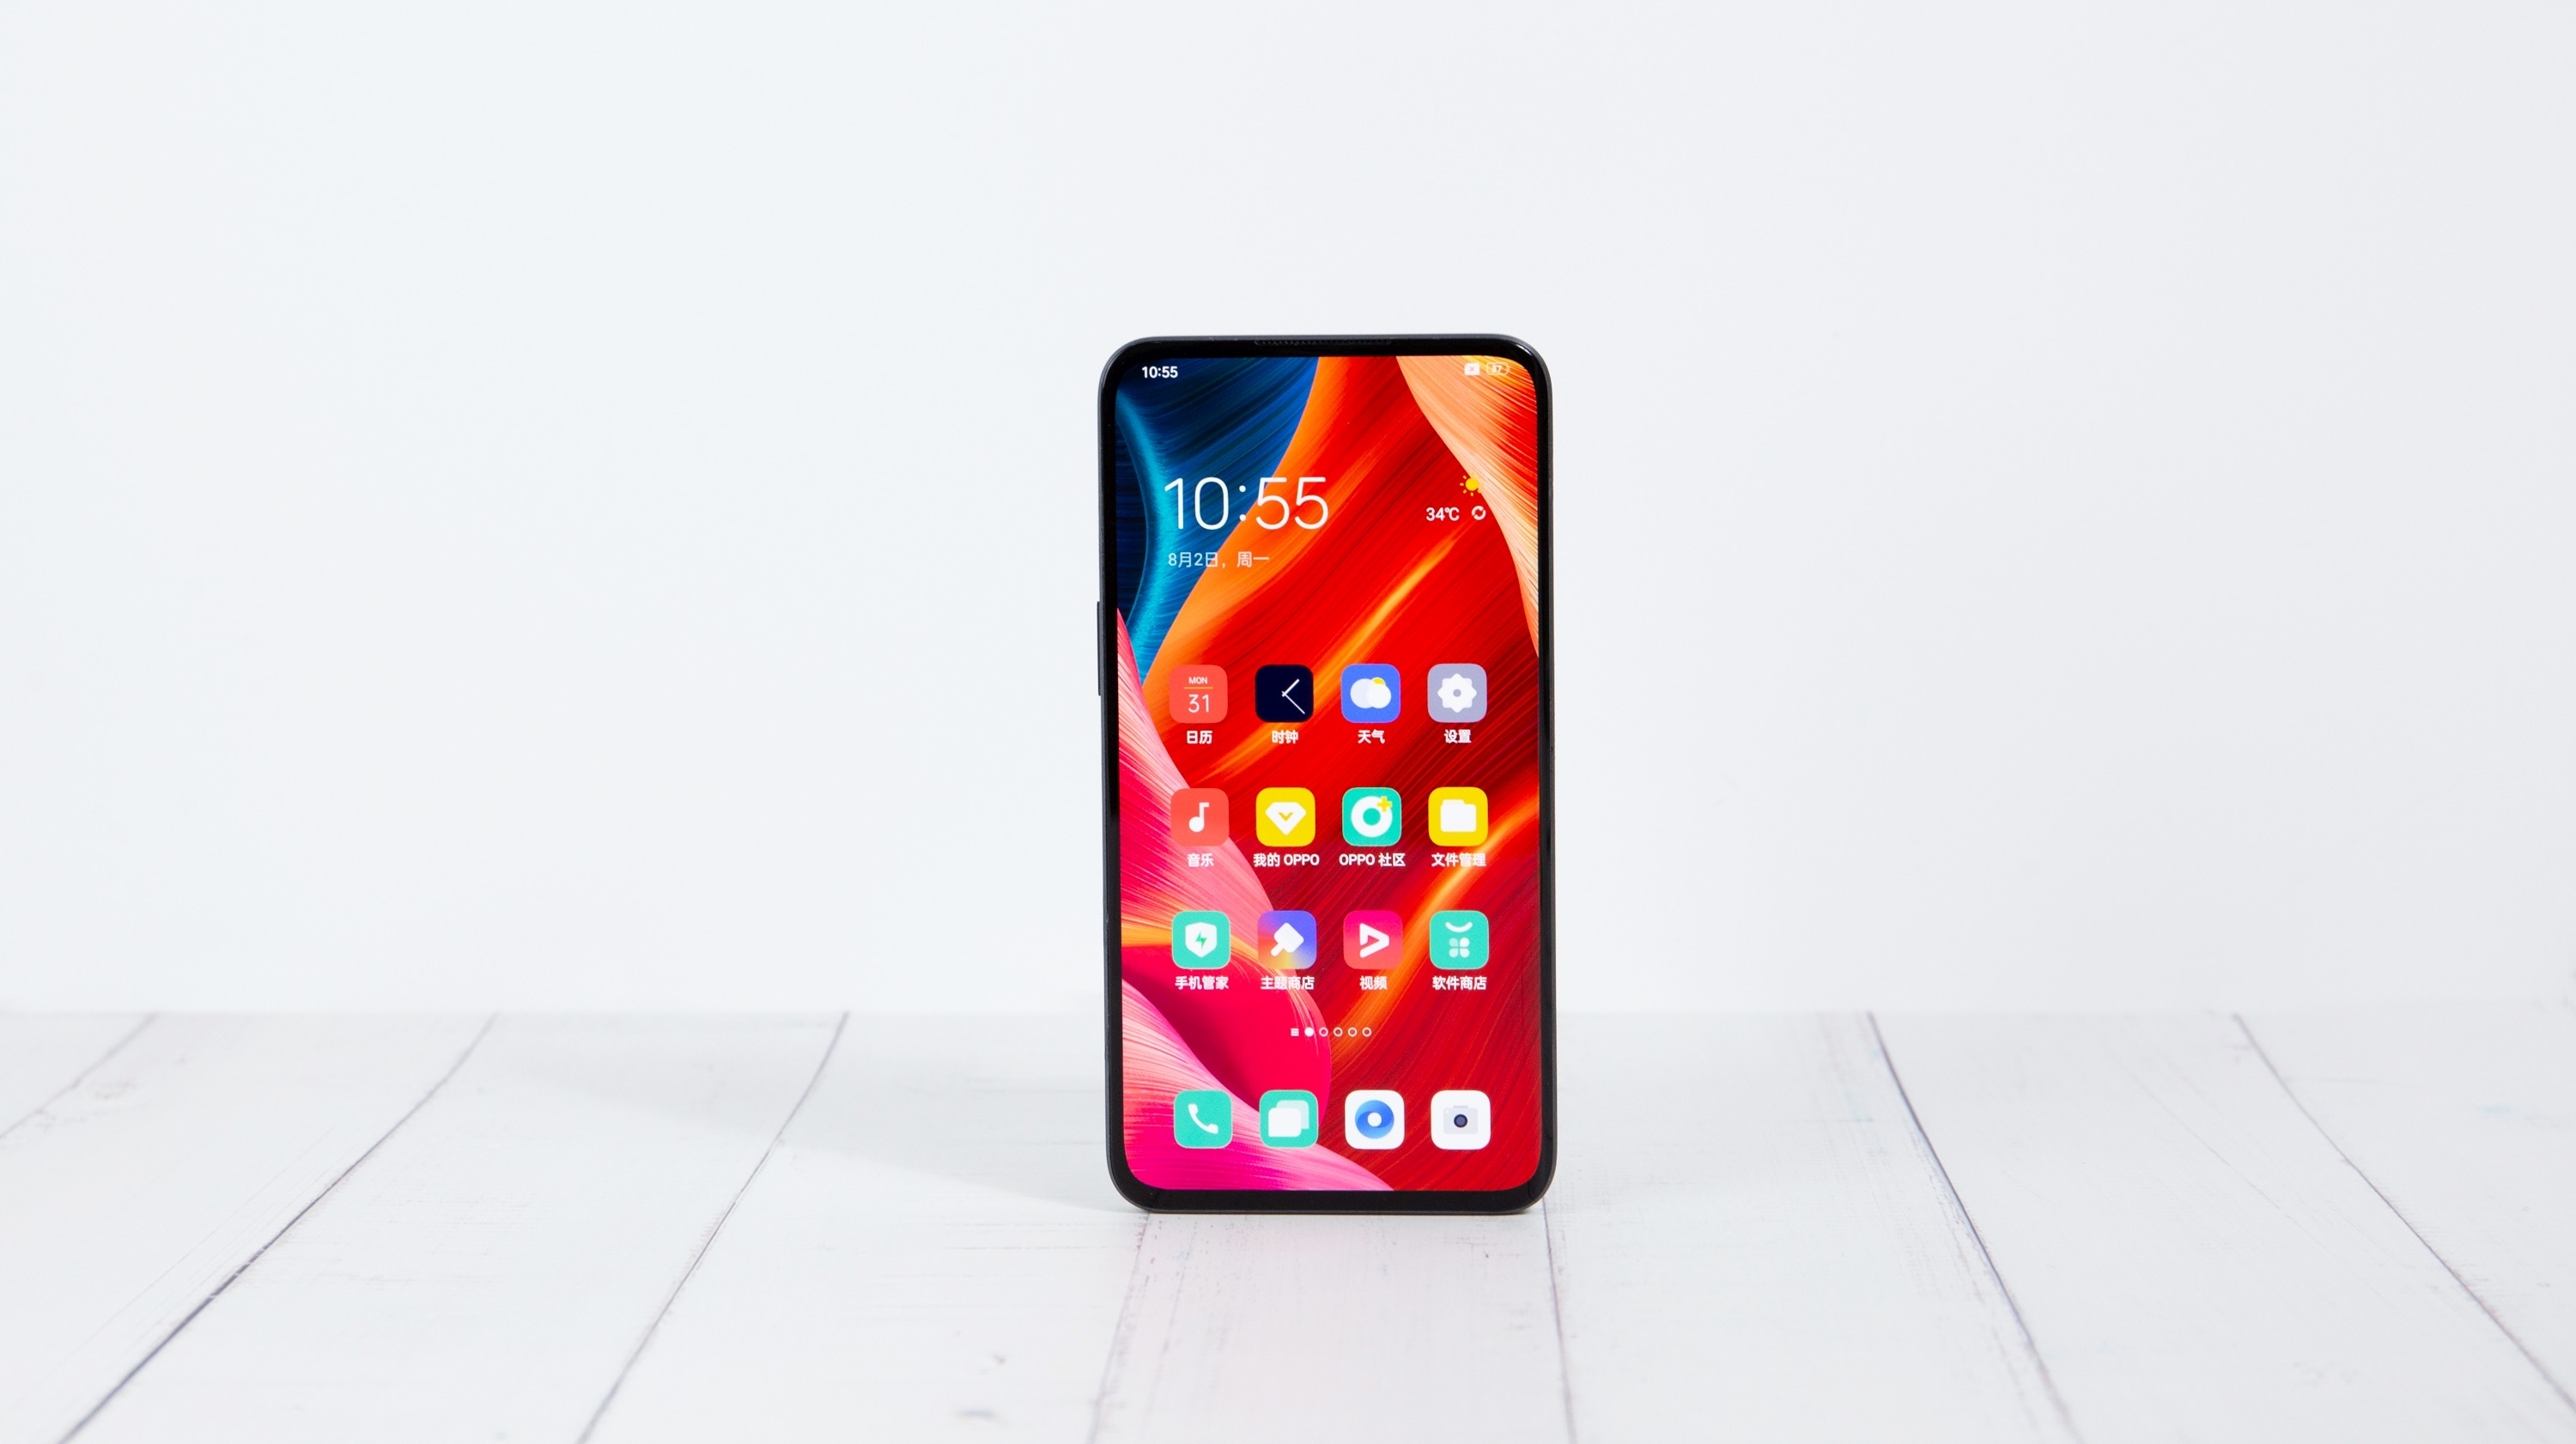 An Oppo under-display camera prototype phone